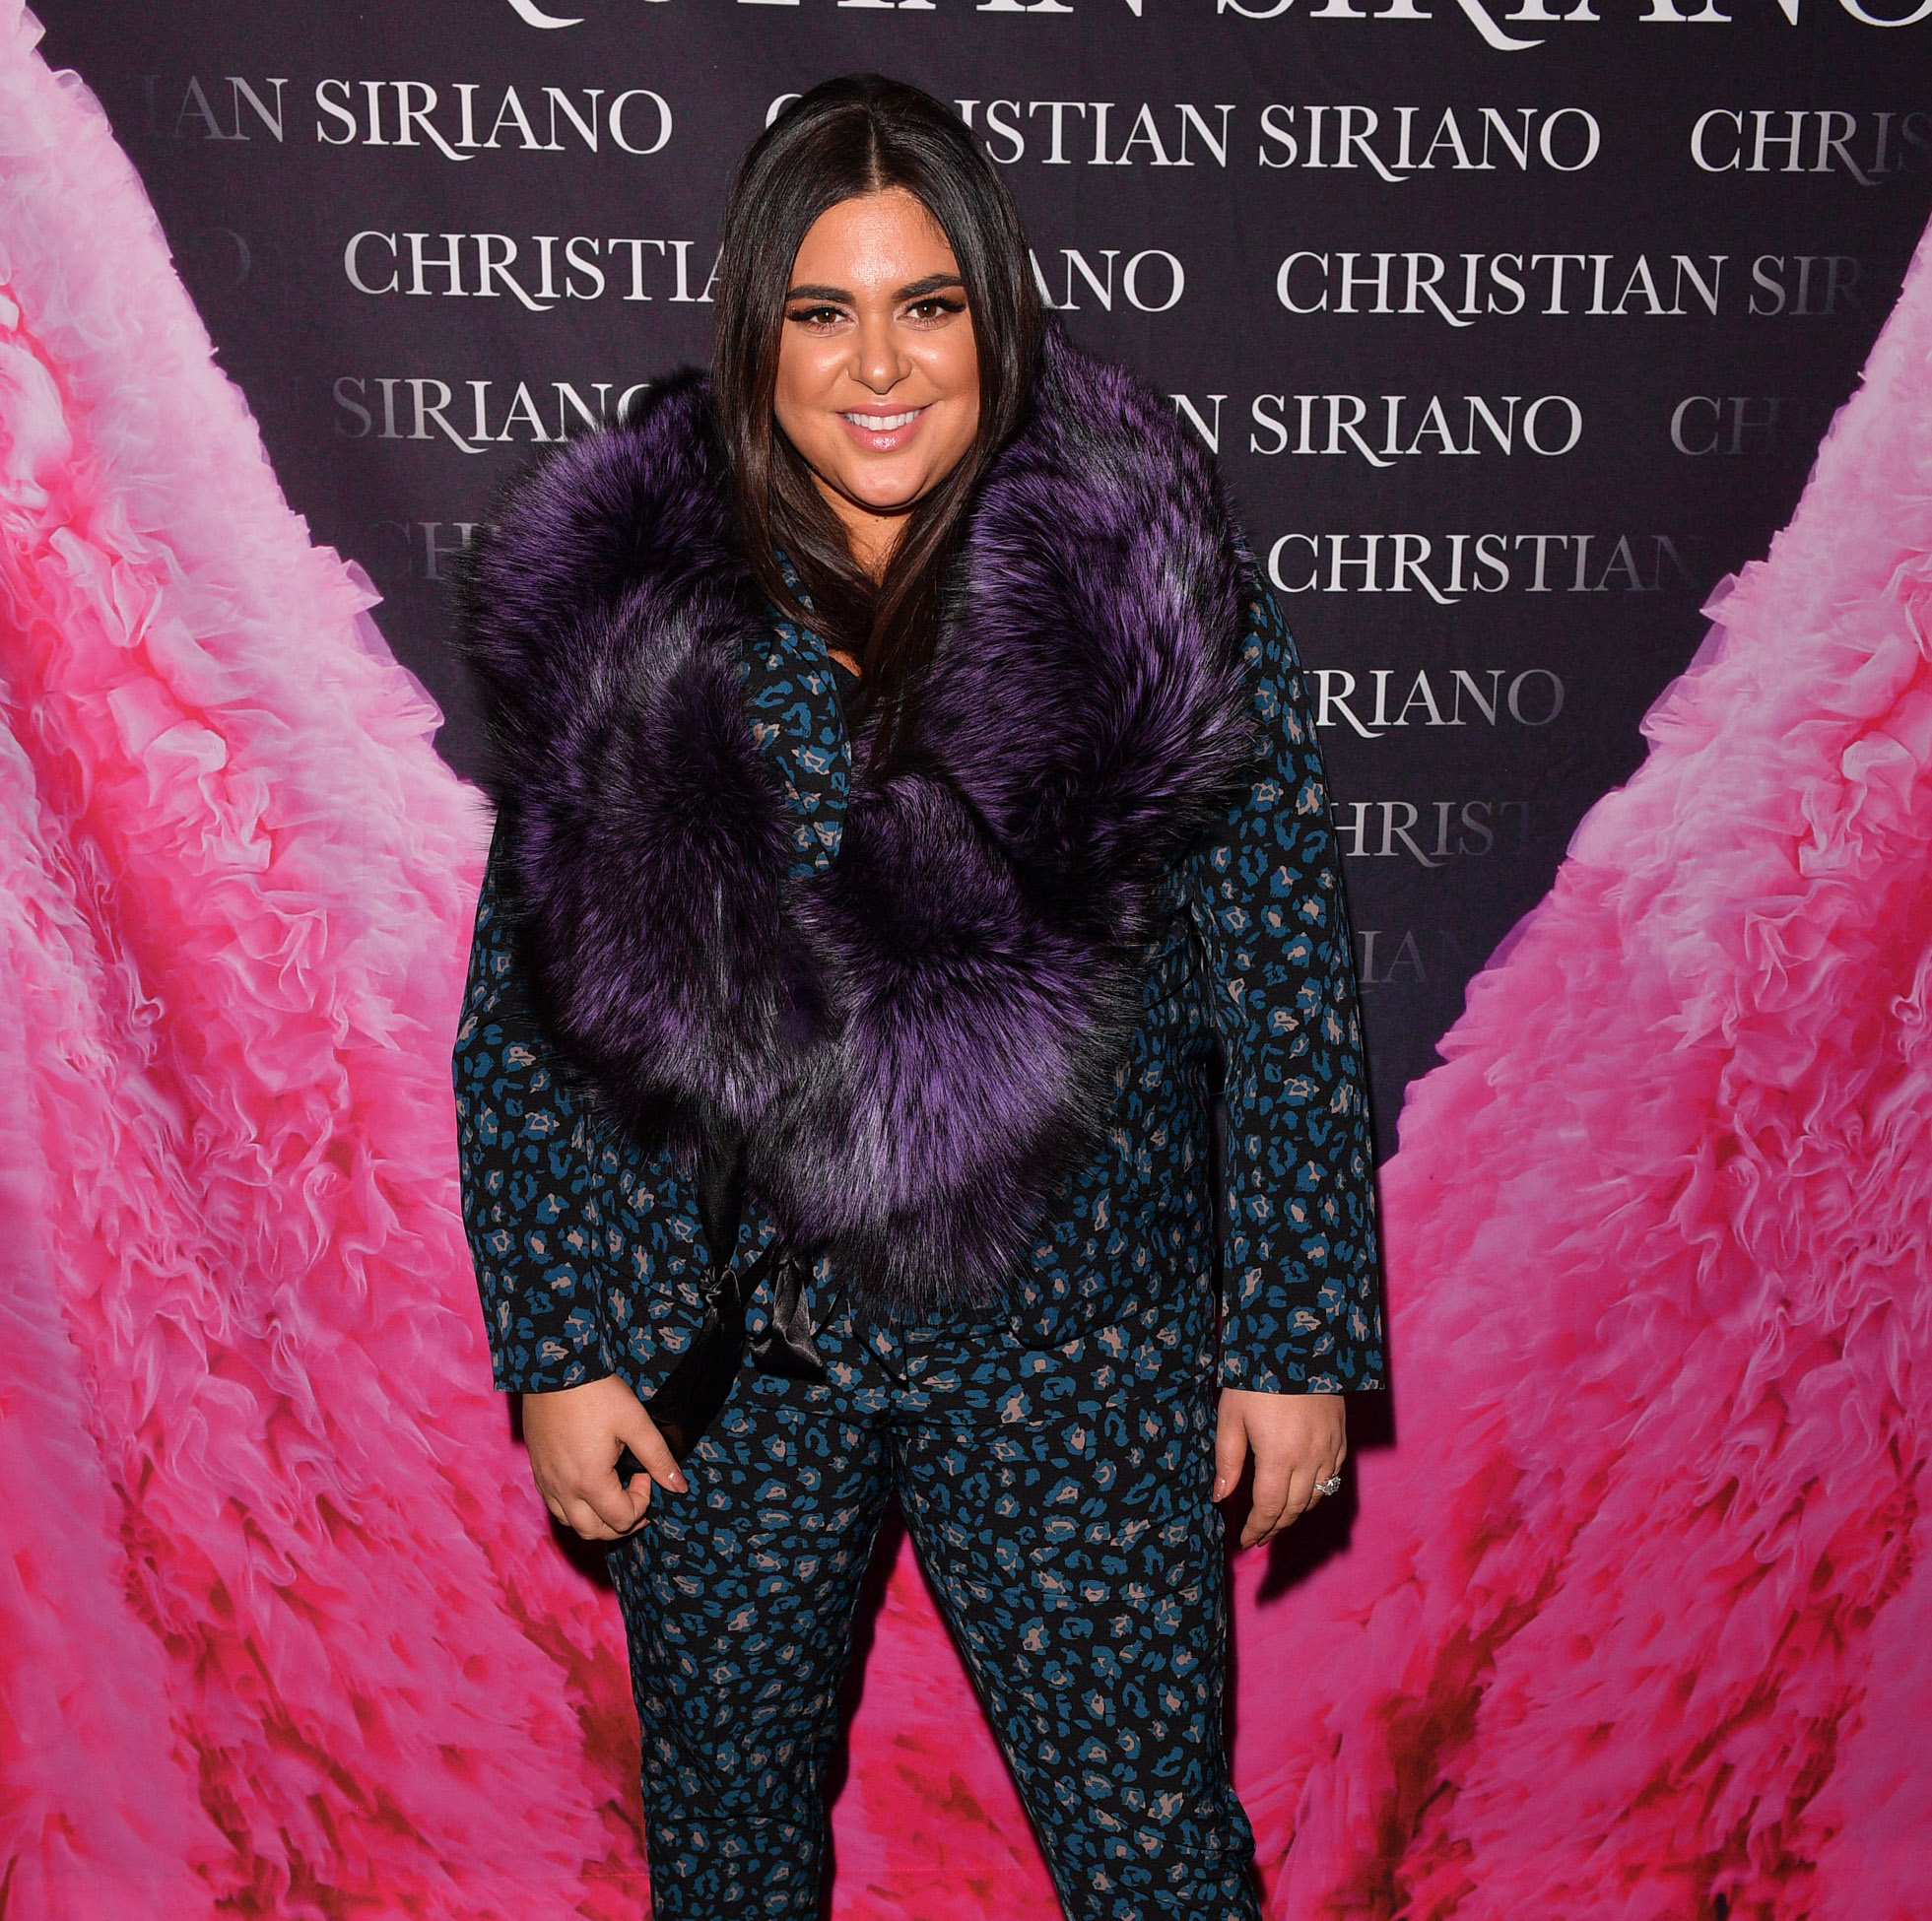 Roxy Earle at Christian Siriano event